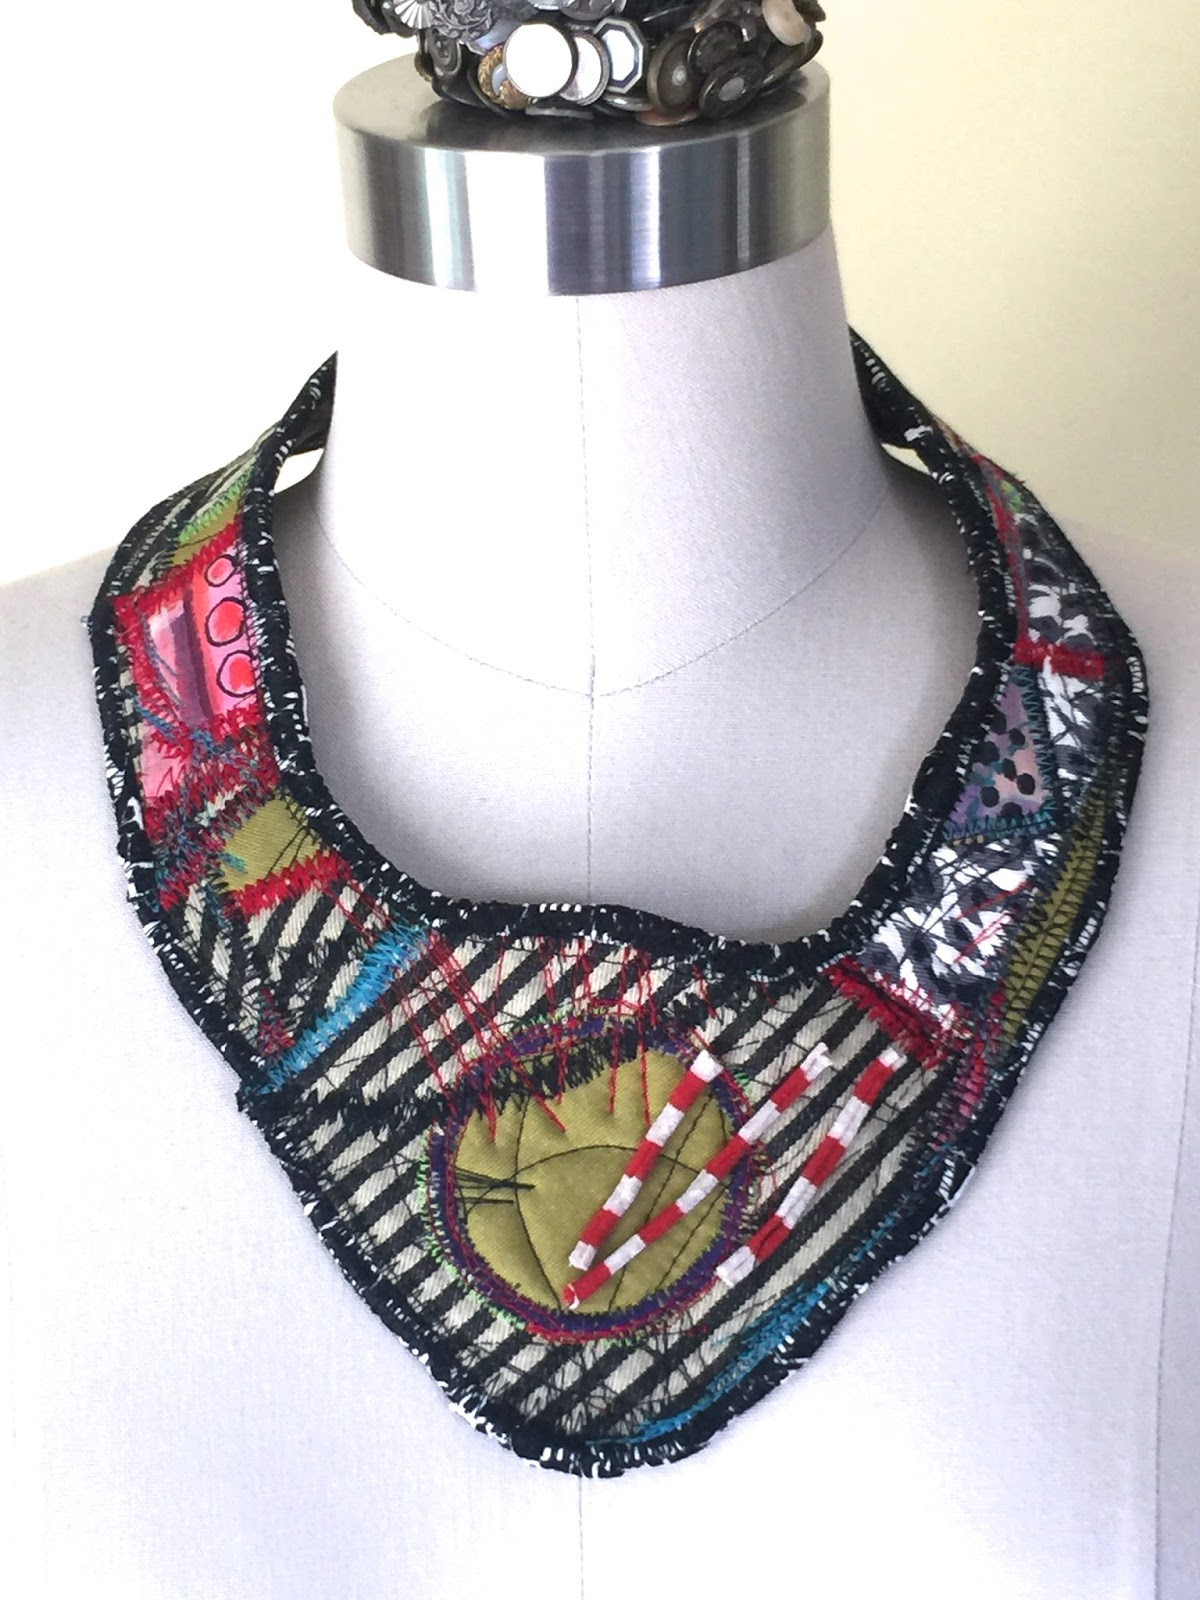 textile fabric jewelry pin necklace ooak op atliart upcycled door vintage hindu bohemian